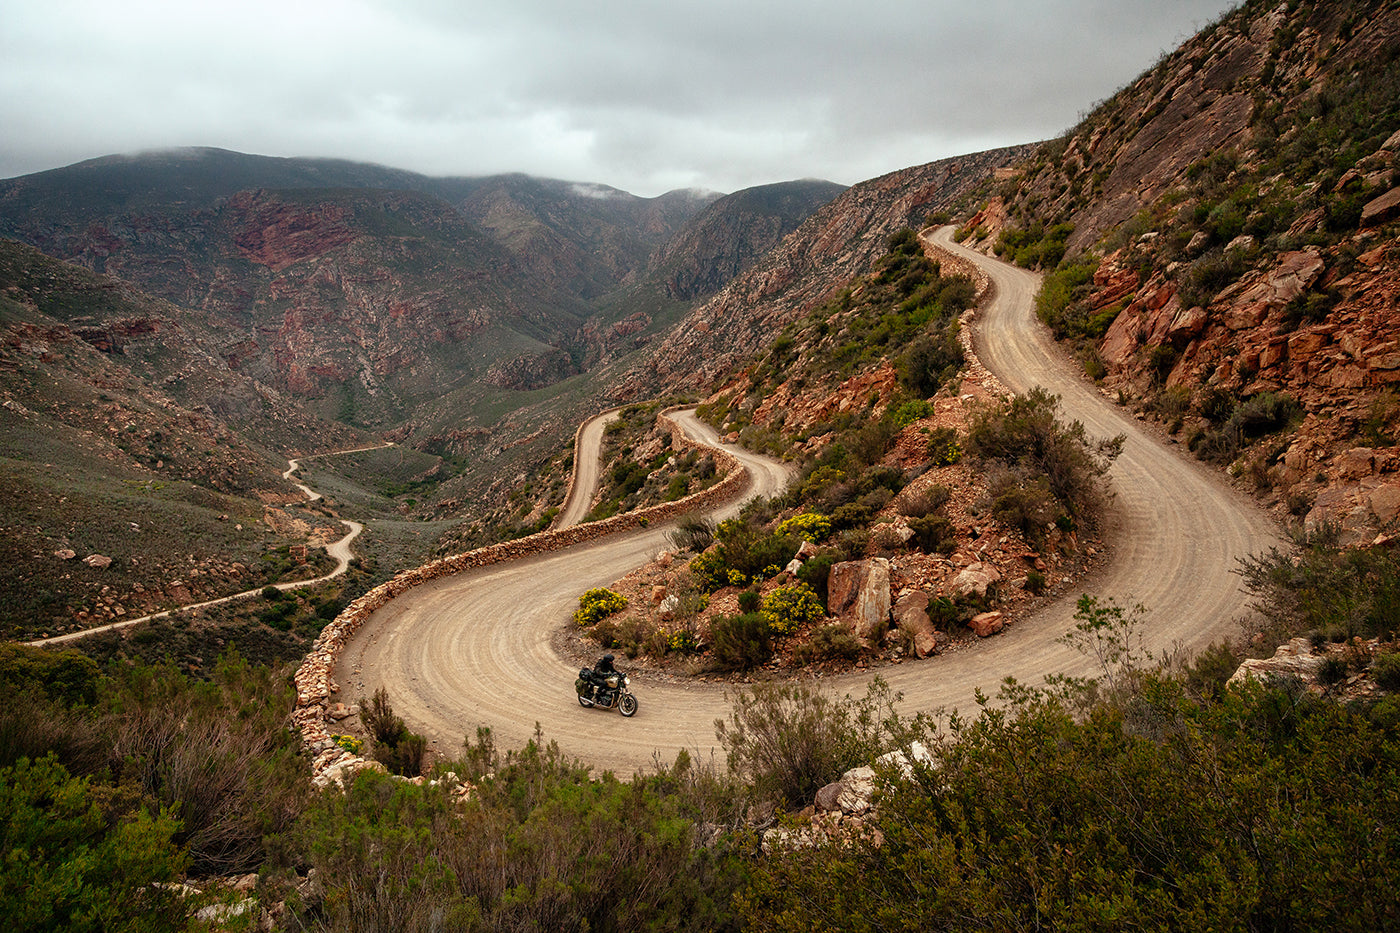 From Cape Town To Lesotho's High Plateaus And Back. Photo by Archie Leeming for gestalten Rideout!